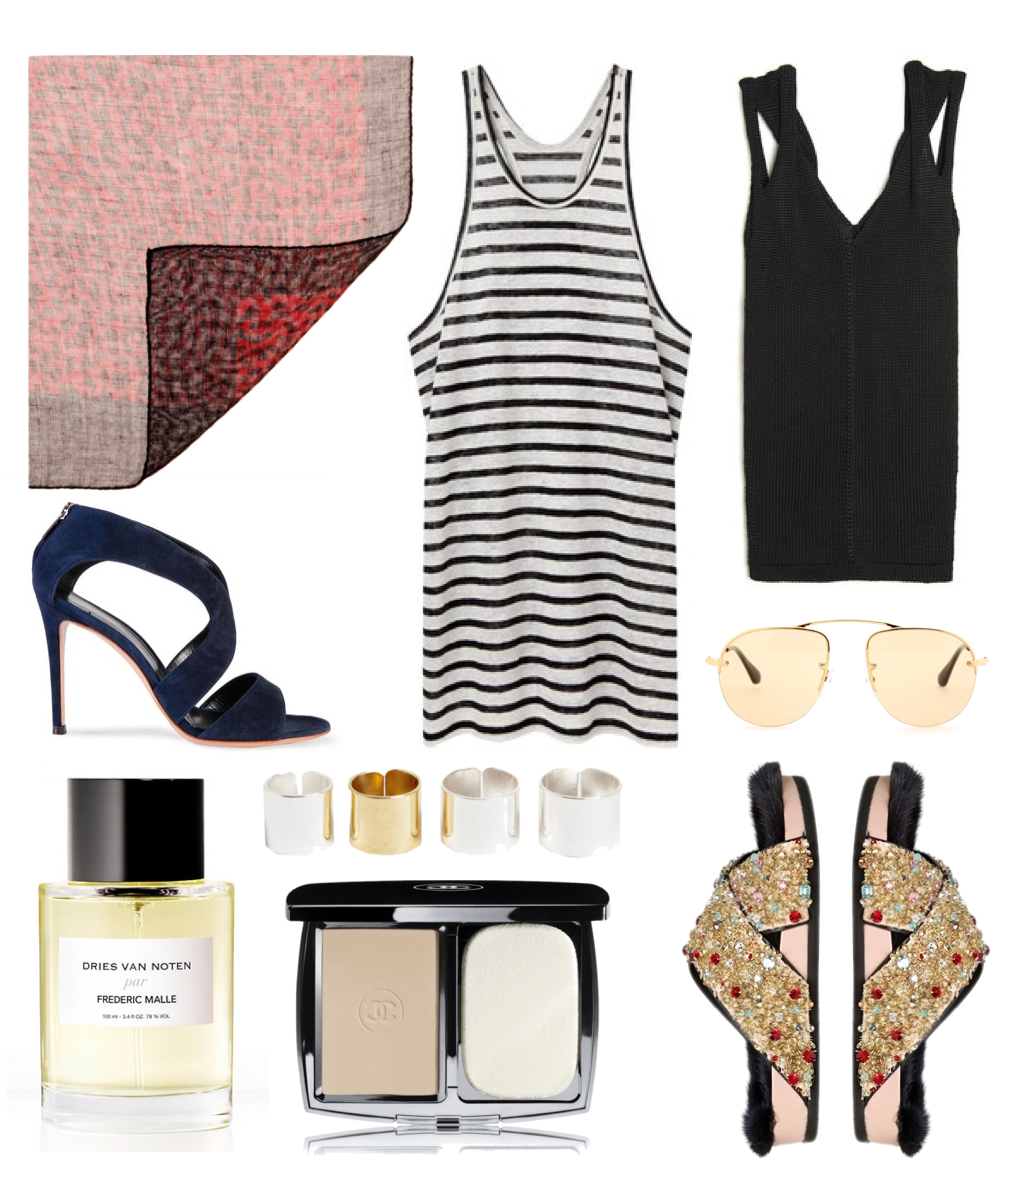 Spring Wish List - Saint Laurent leaopard scarf, Alexander Wang tanks, Céline slipeprs, Dries Van Noten Perfume, Chanel roughe, Prada sunglasses, Gianvito Rossi sandals